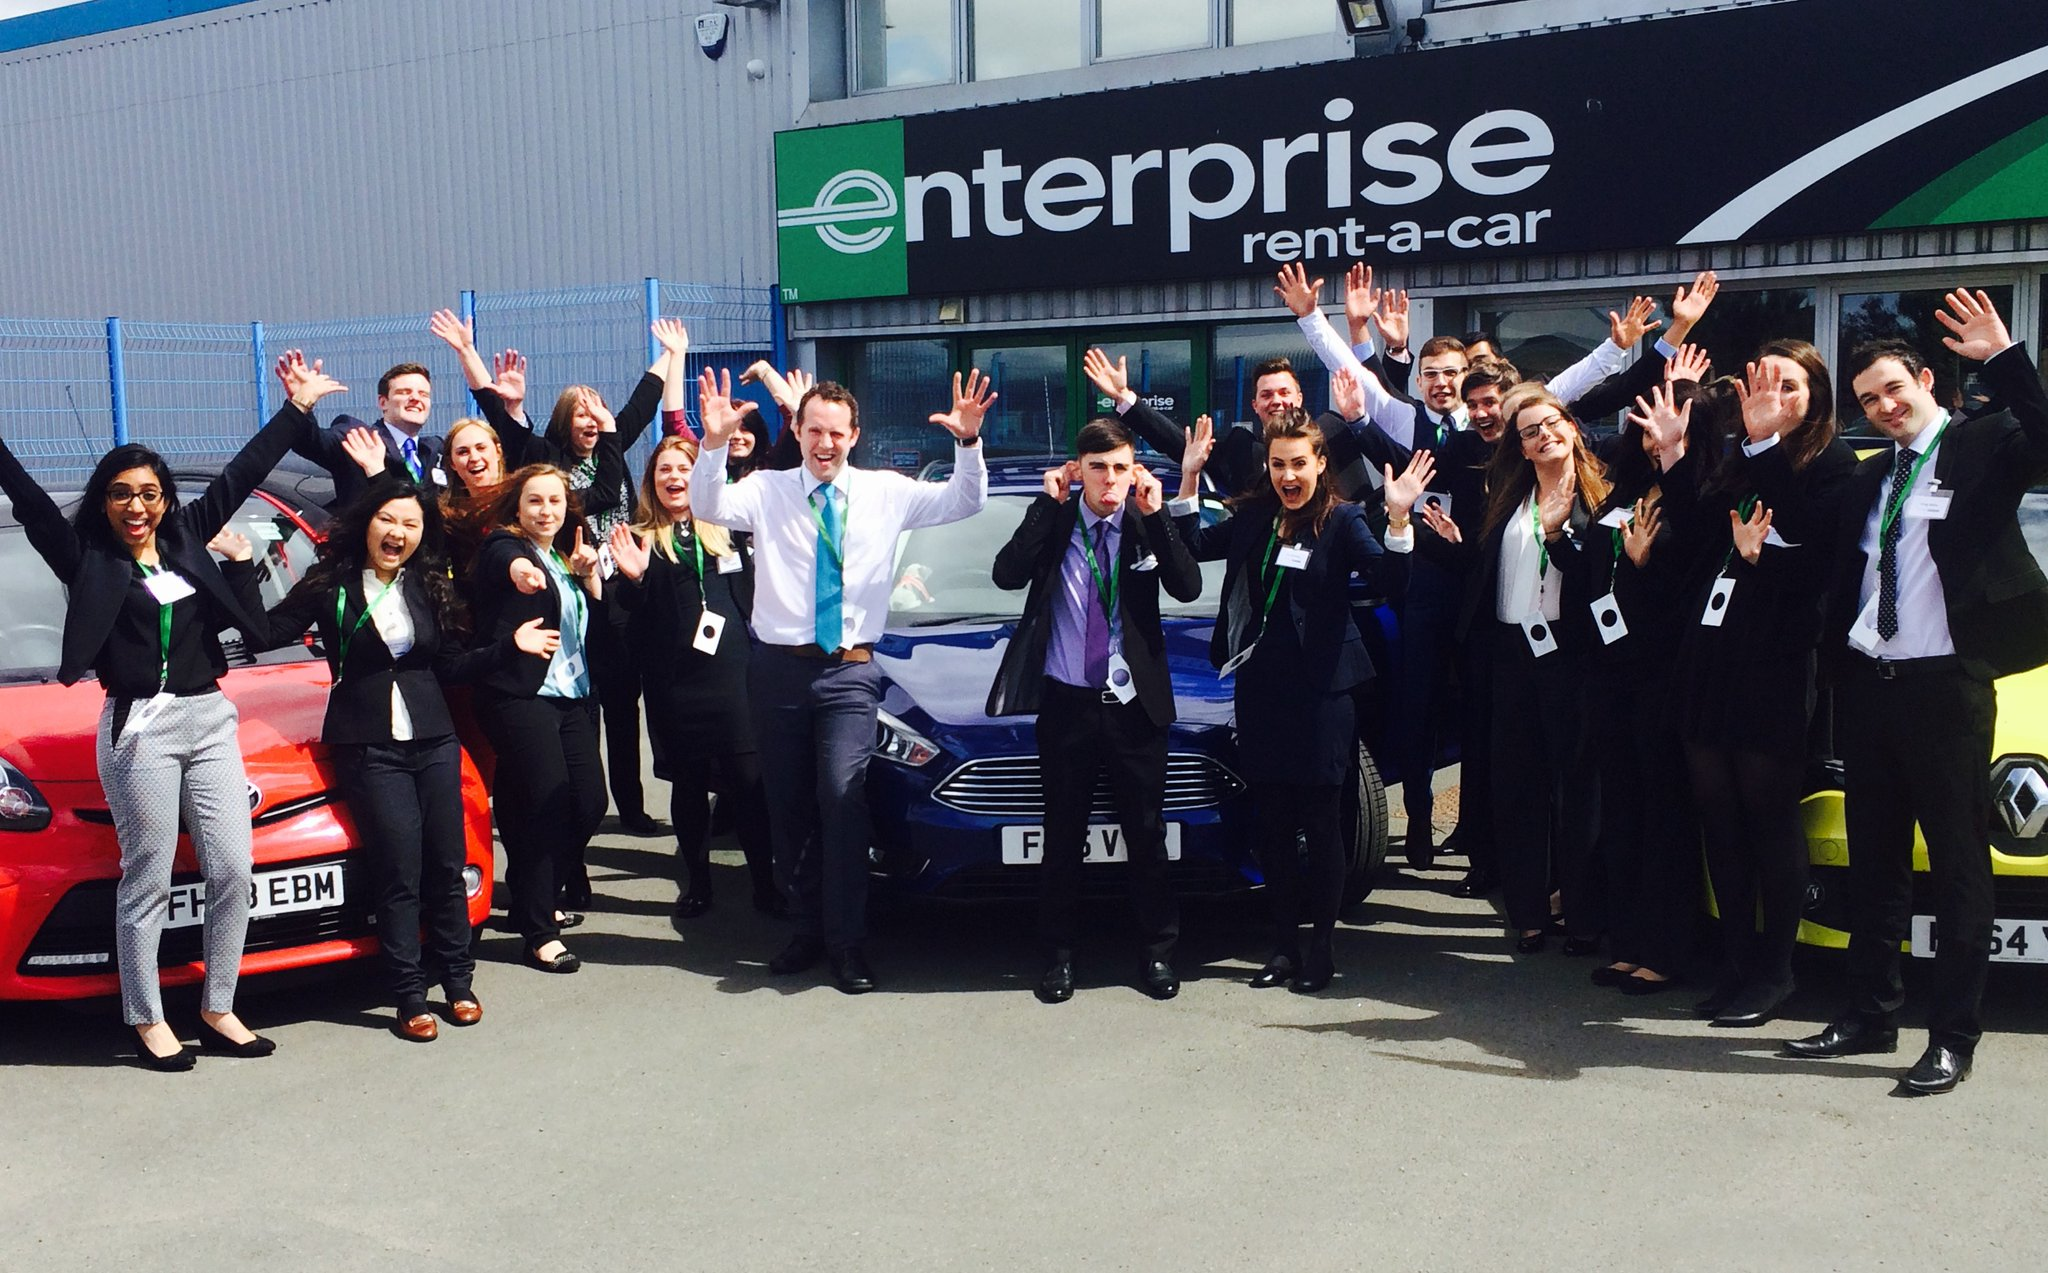 Enterprise Rent-A-Car UK Employees